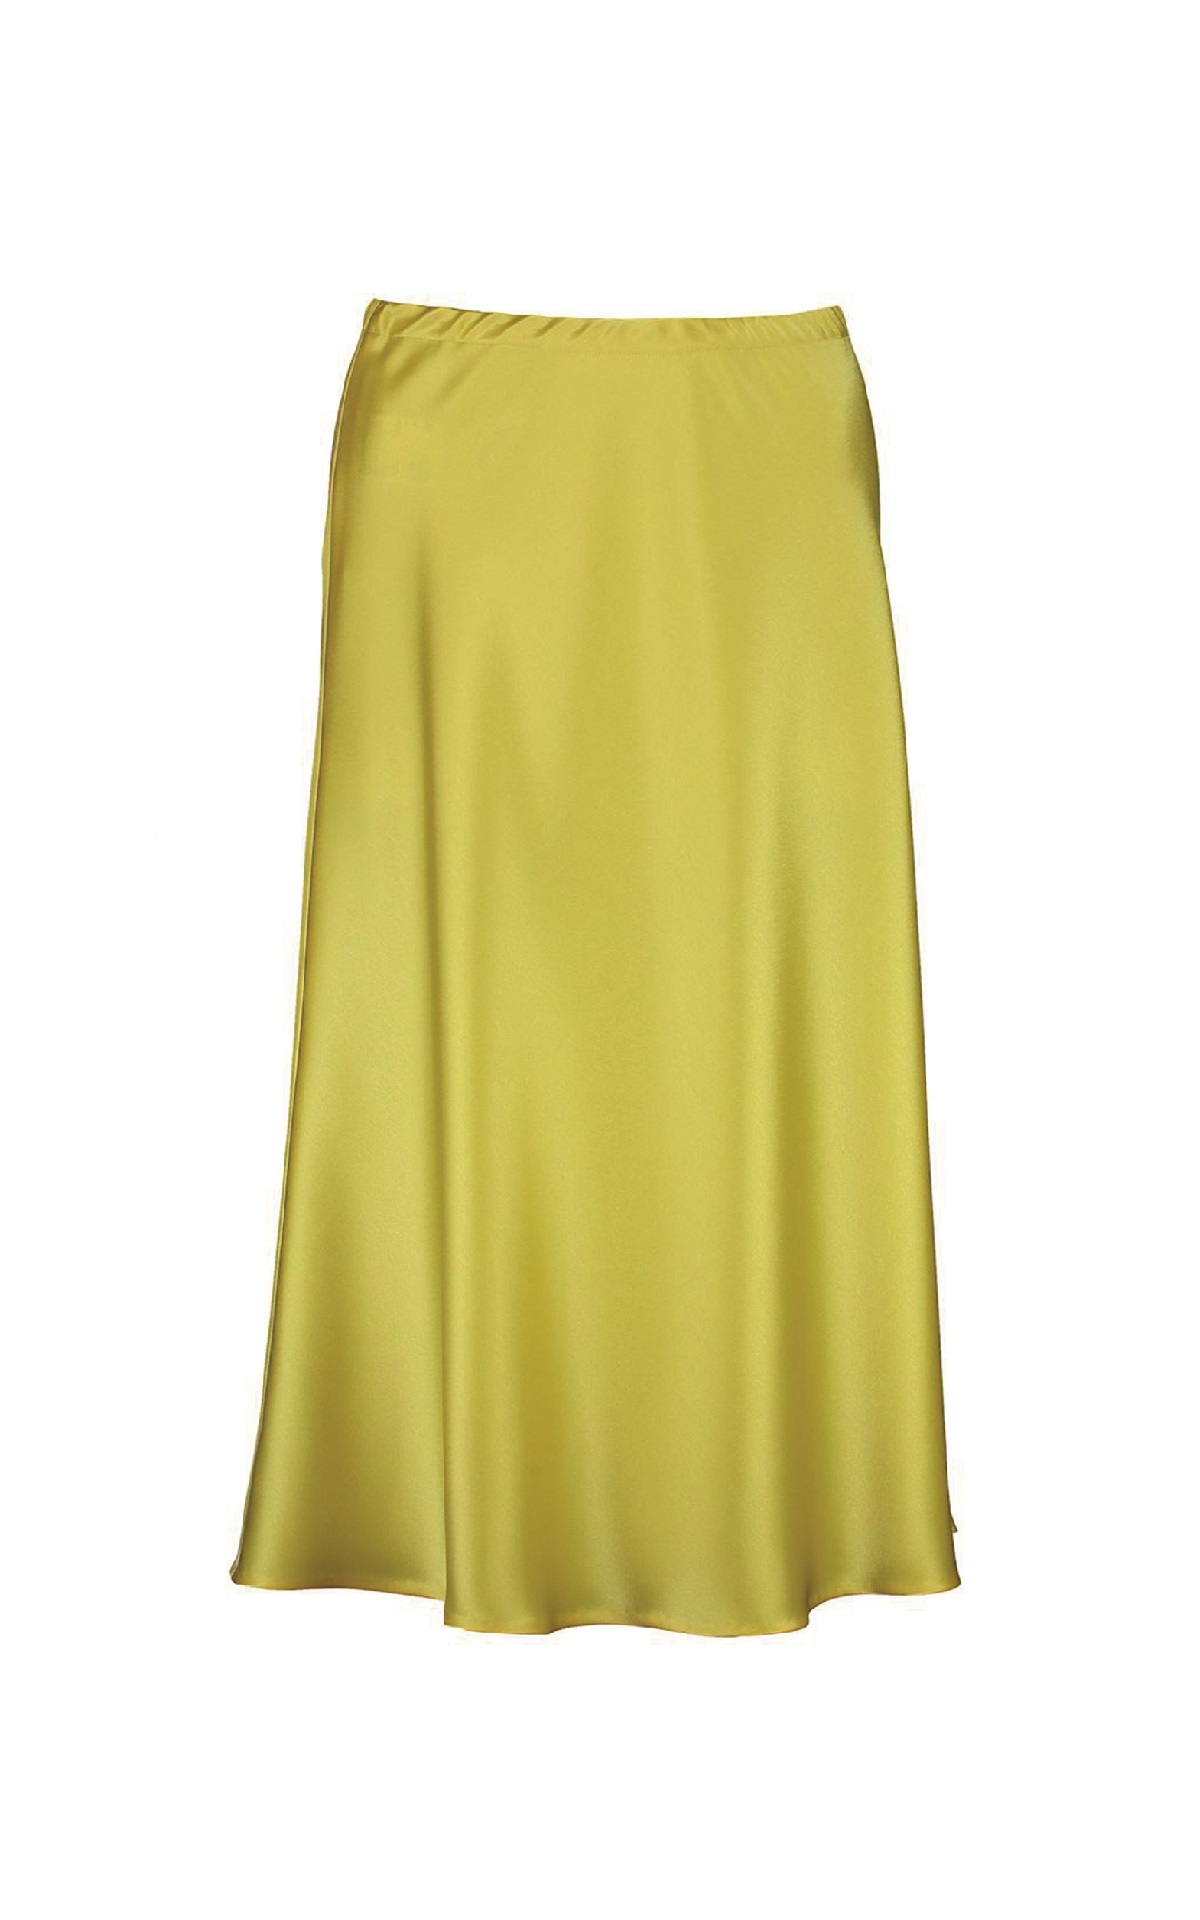 Yellow satin midi skirt Escada